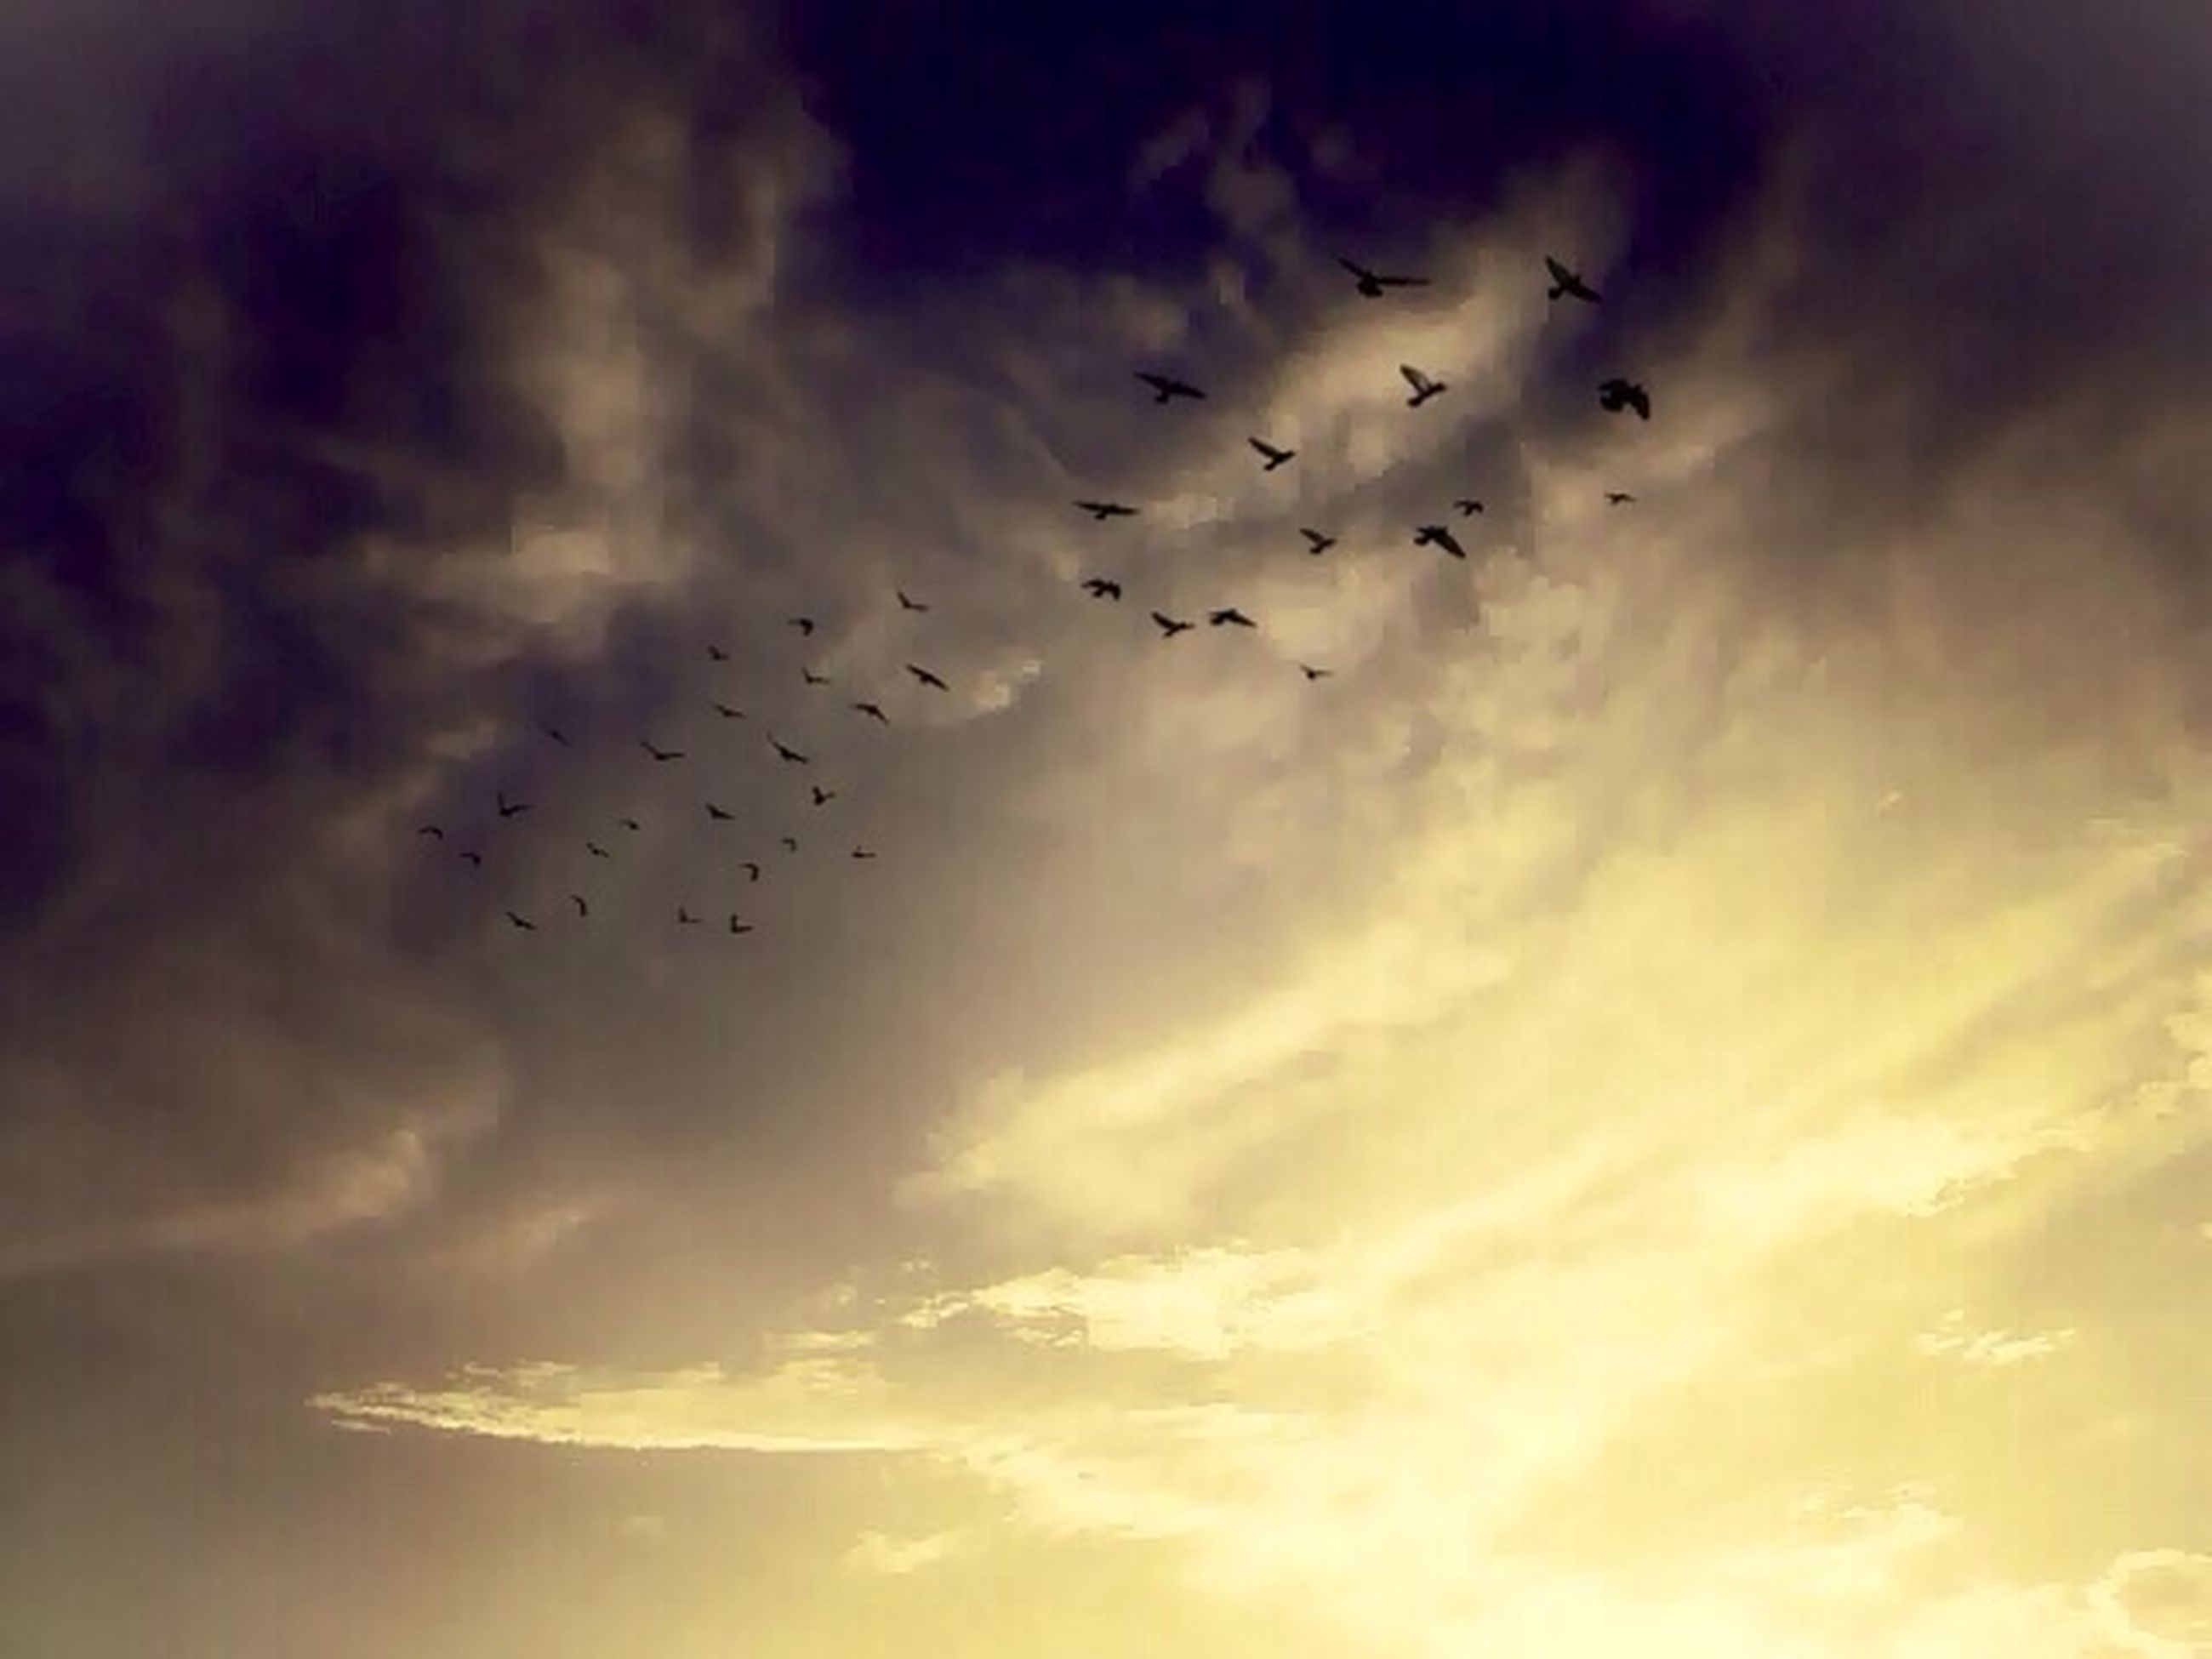 flying, bird, animal themes, animals in the wild, wildlife, flock of birds, low angle view, sky, cloud - sky, silhouette, nature, mid-air, spread wings, beauty in nature, cloudy, outdoors, medium group of animals, sunset, no people